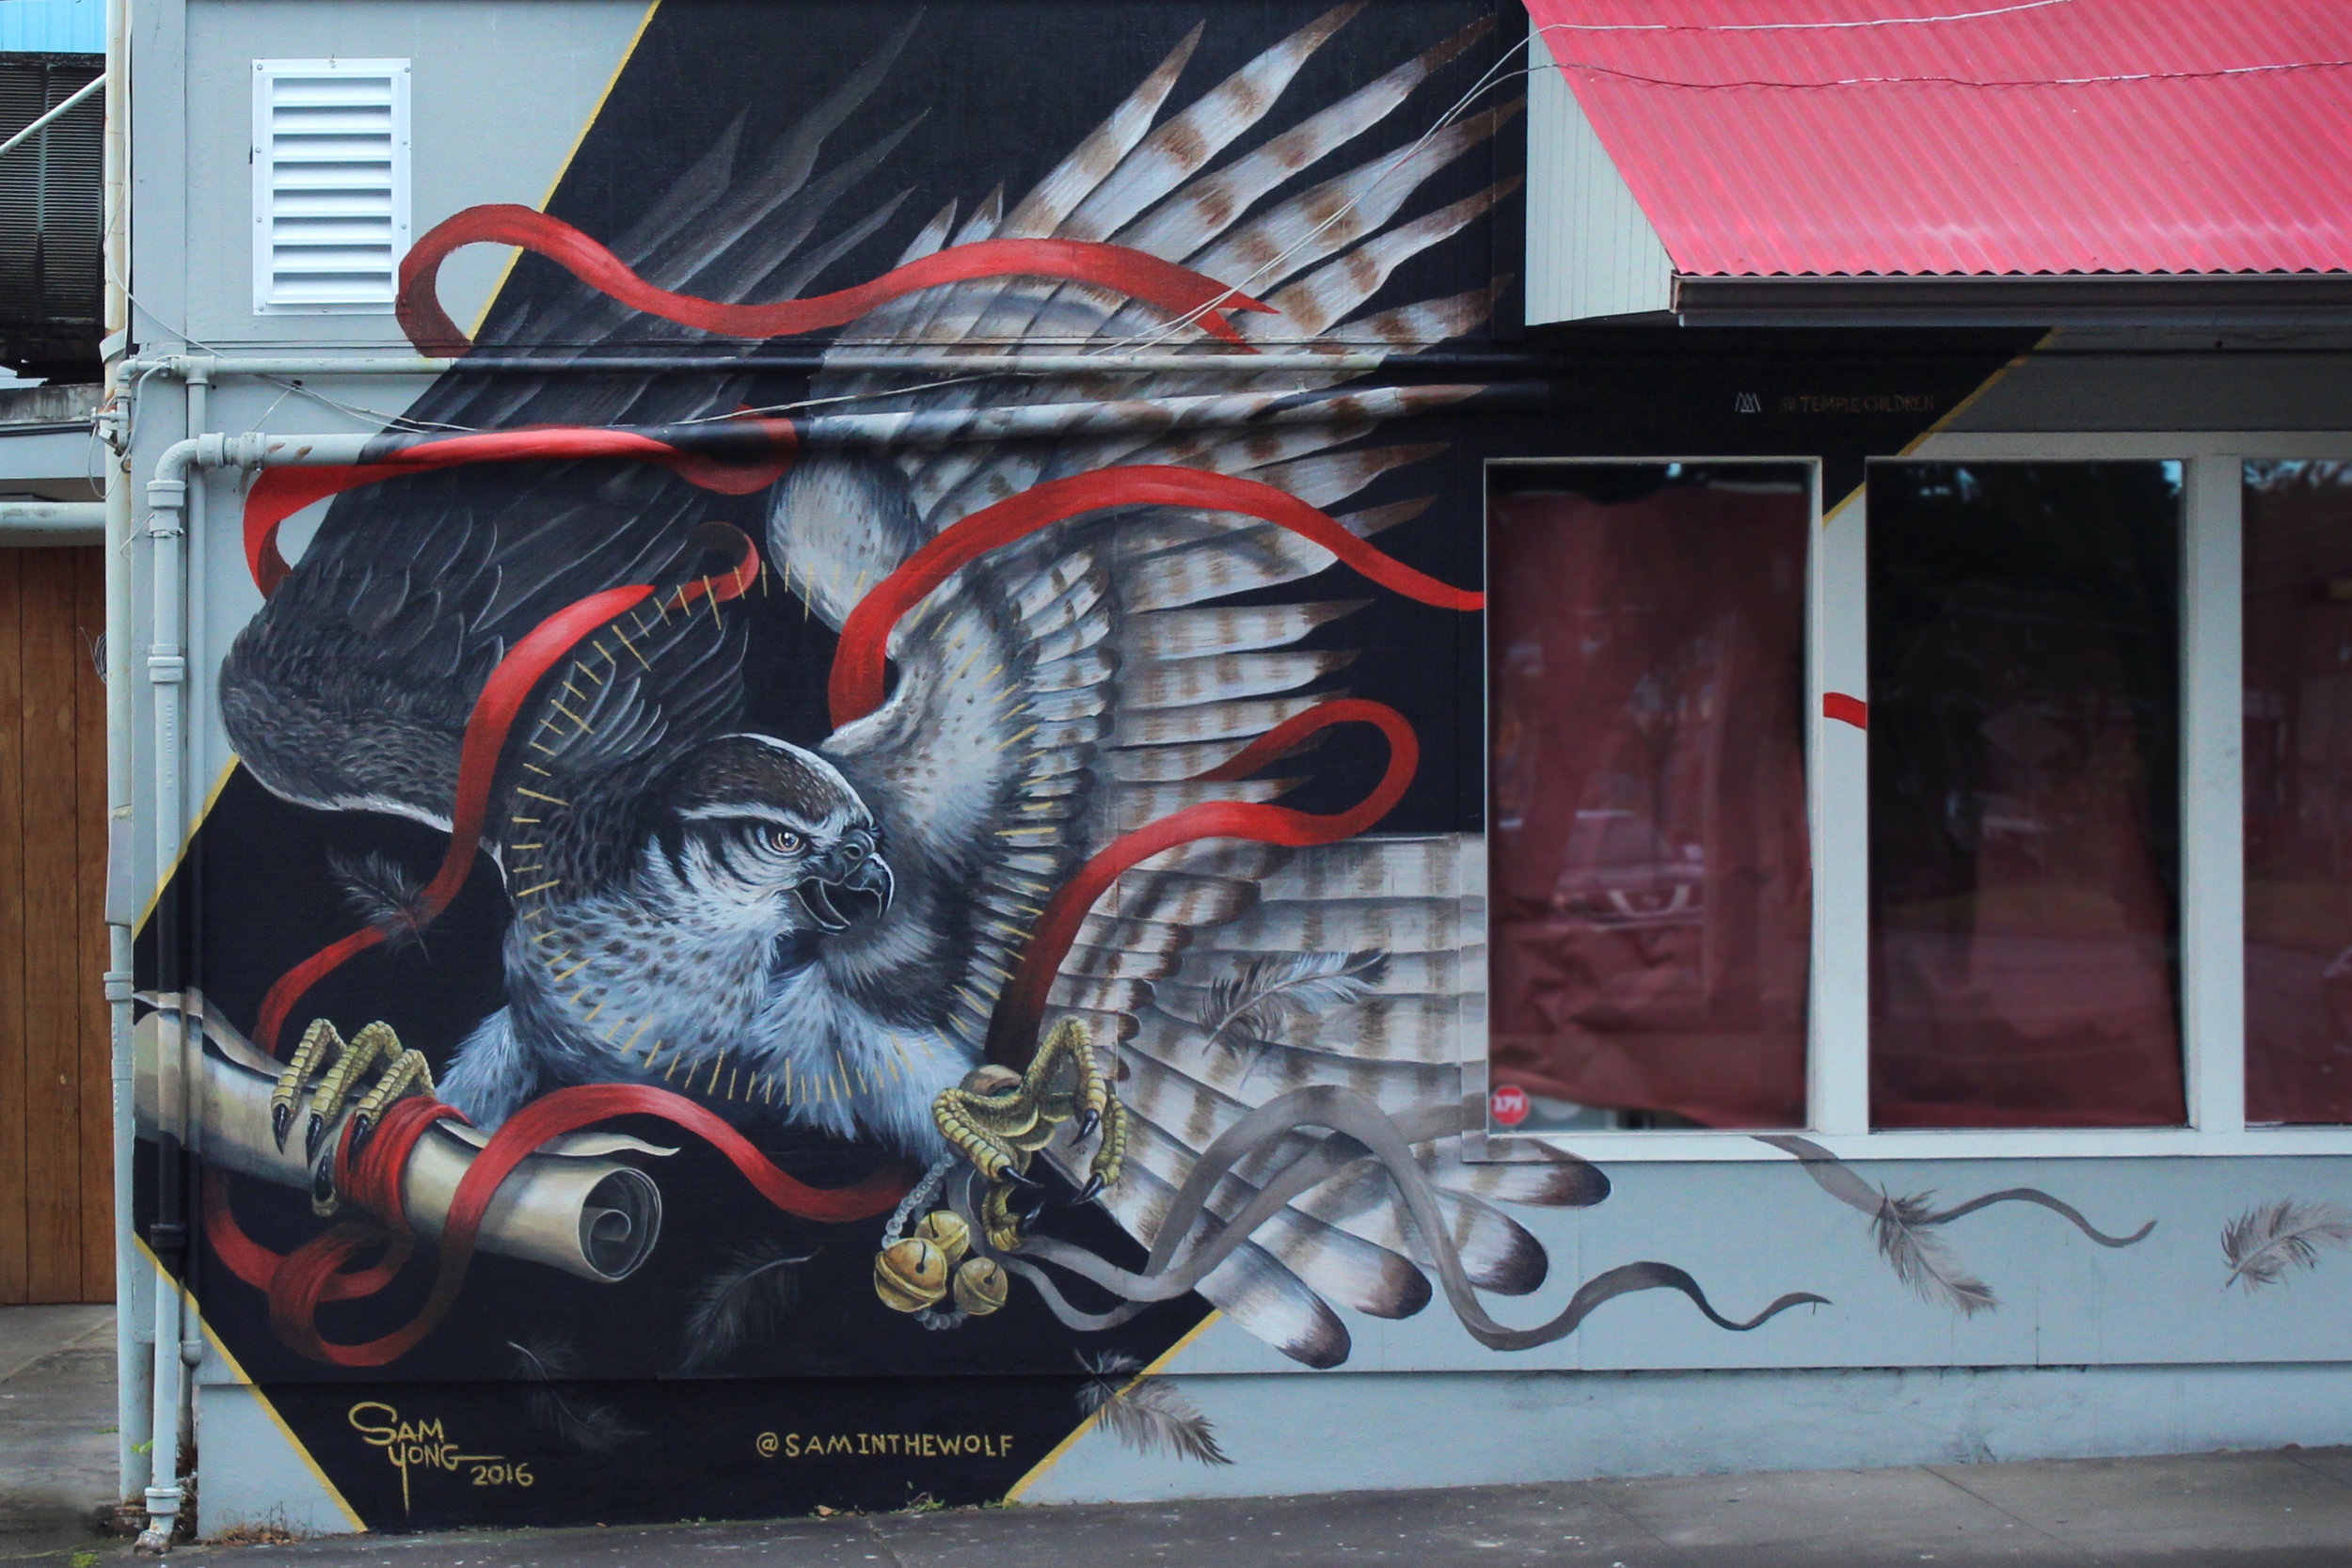 MURAL BY SAM YONG ( @SAMINTHEWOLF ) ON THE CORNER OF PONAHAWAI AND KINOOLE IN DOWNTOWN HILO.